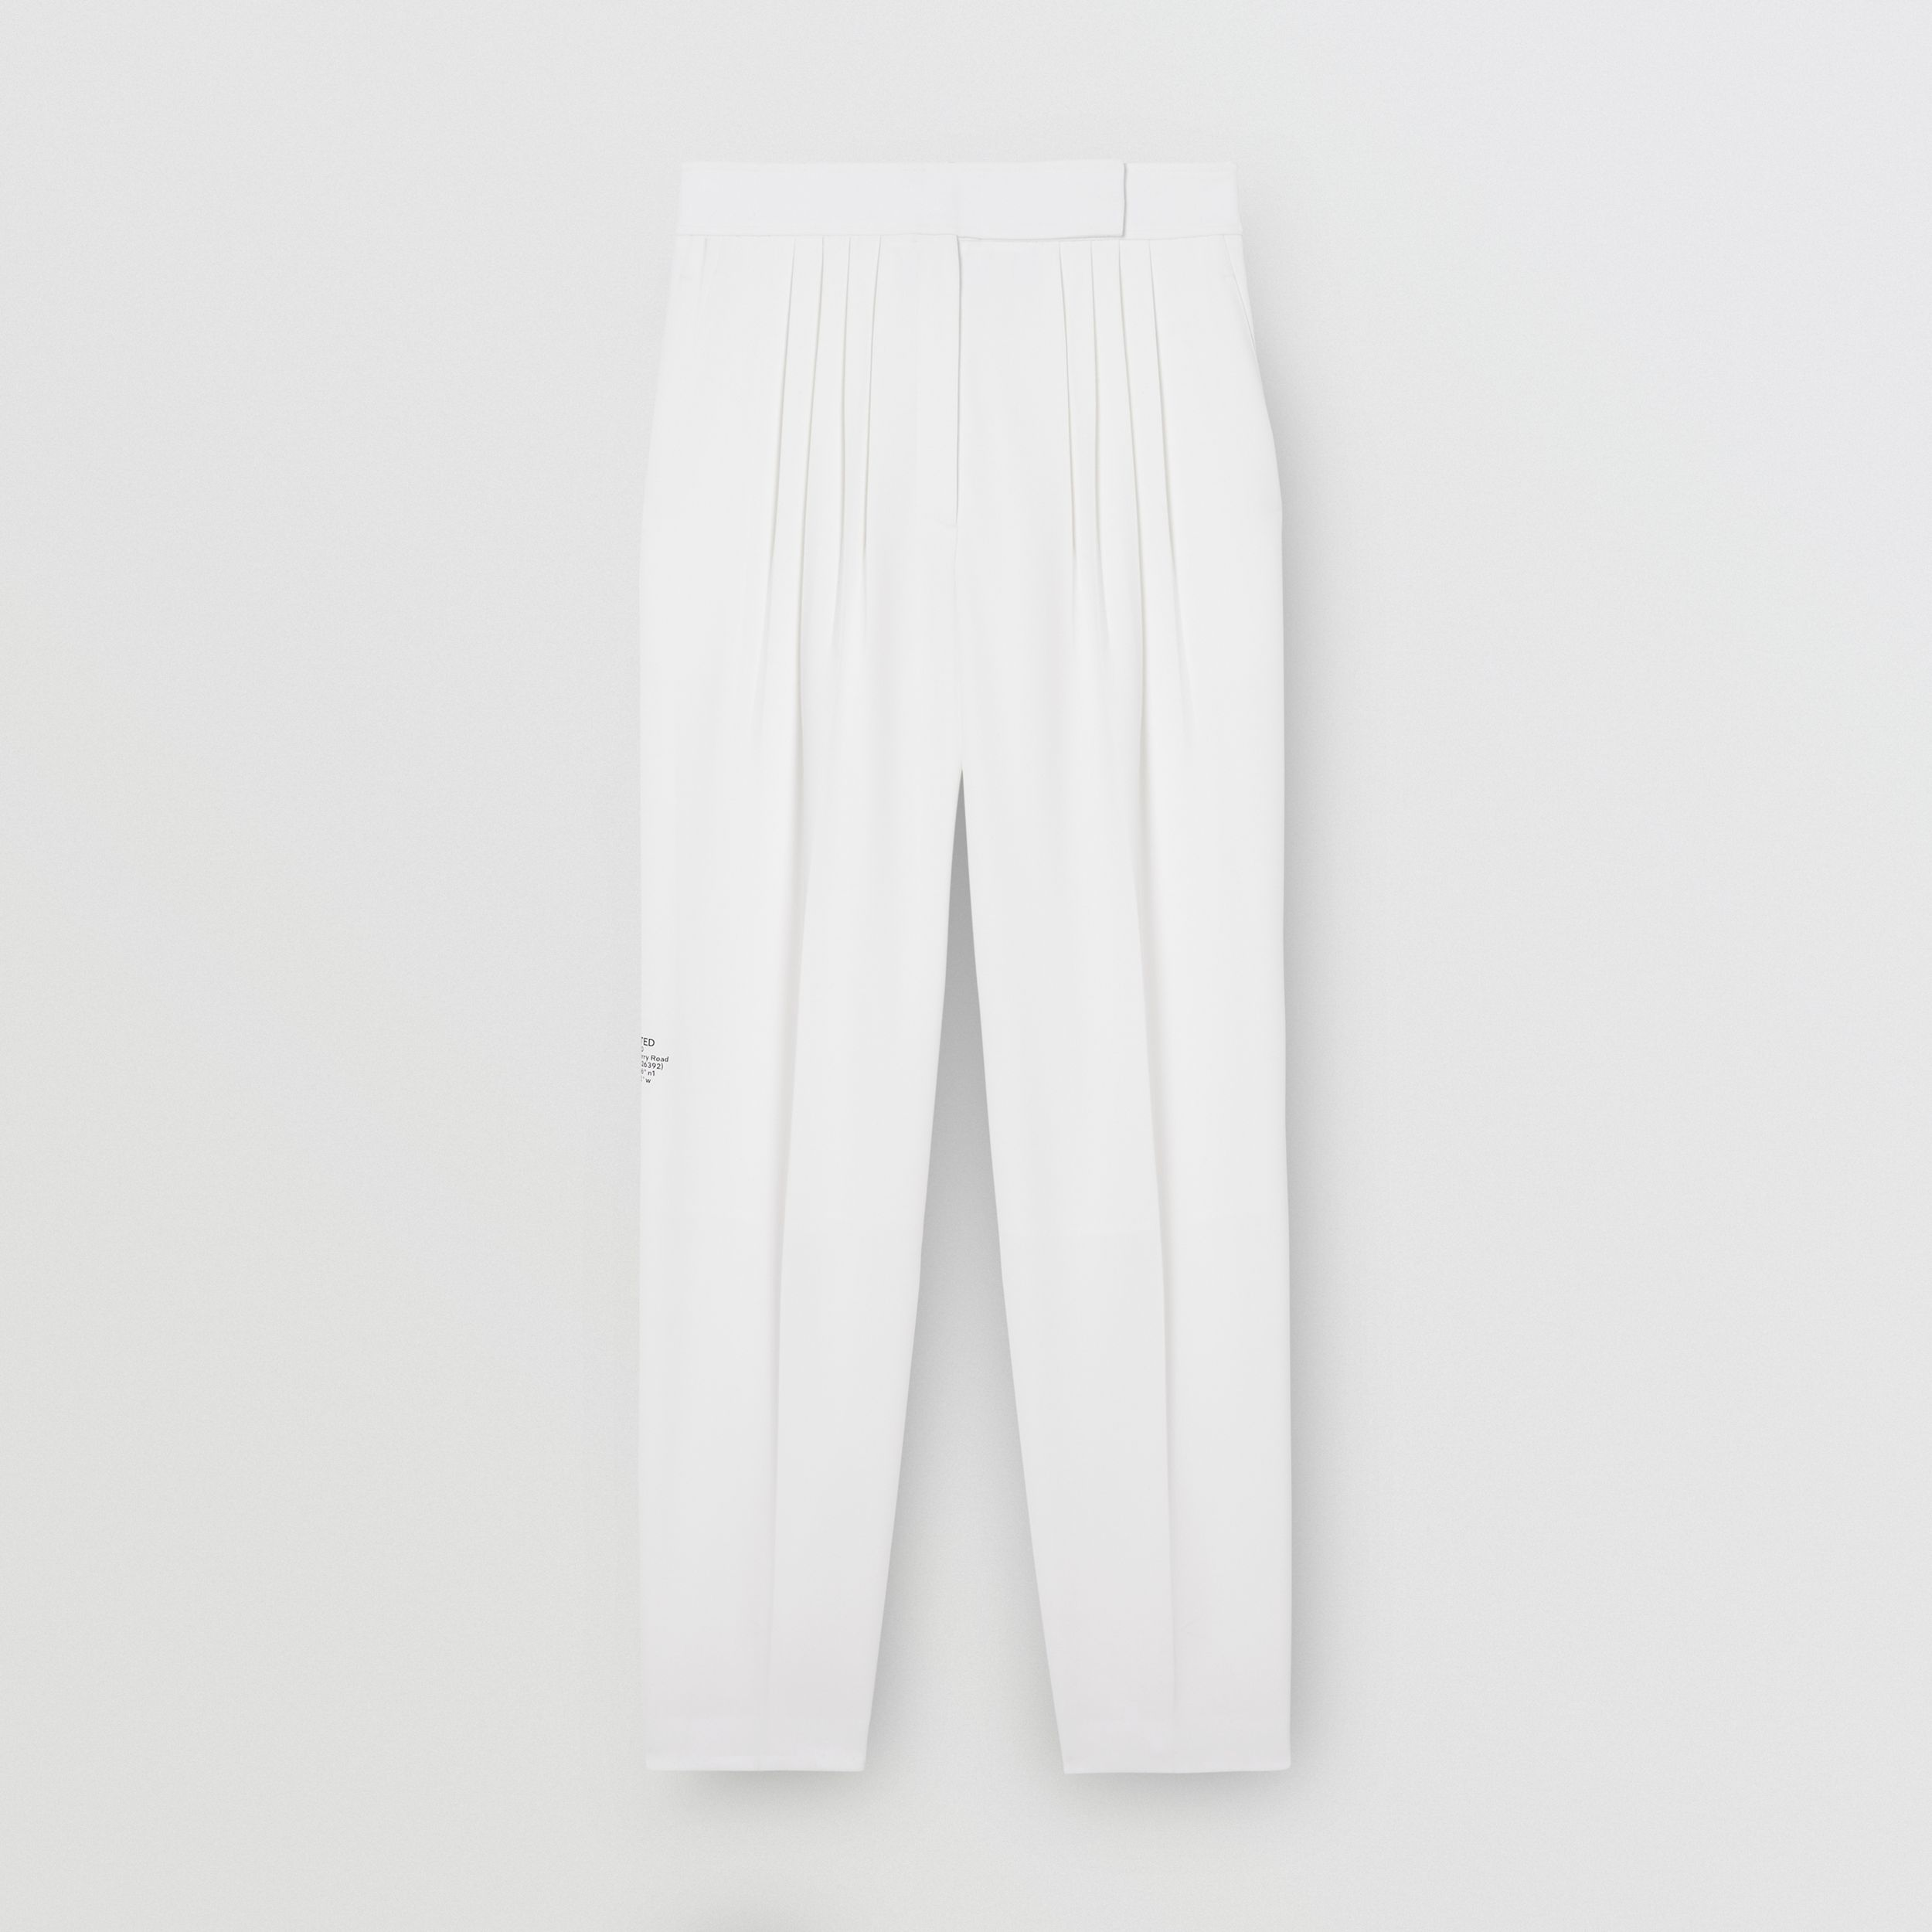 Location Print Wool Blend Tailored Trousers in Optic White - Women | Burberry - 4